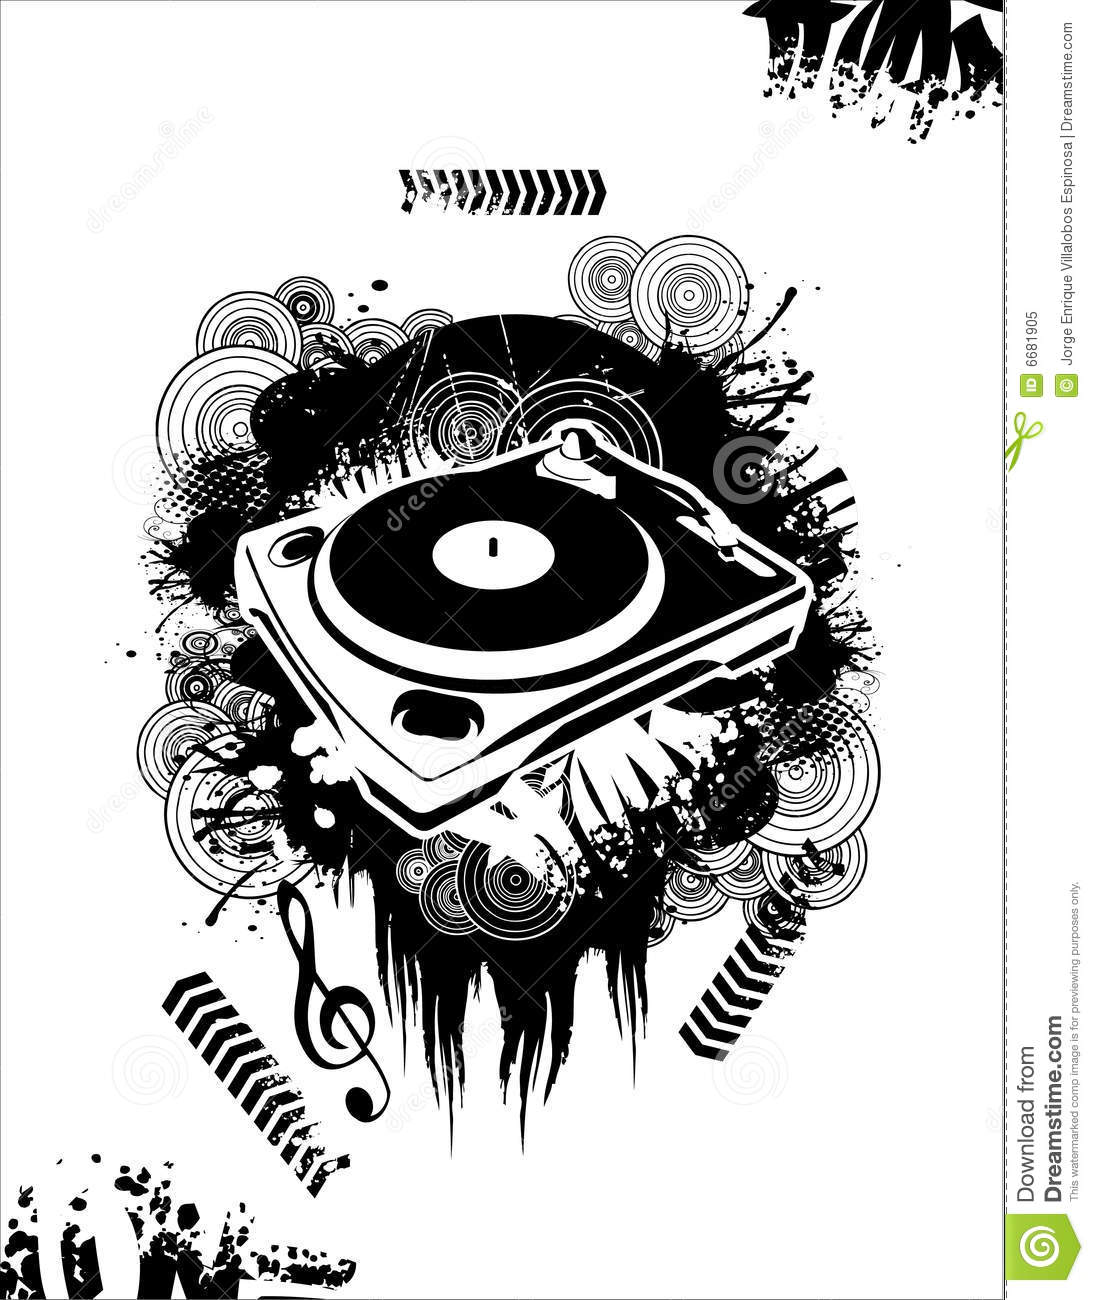 Music Dj Vector Royalty Free Stock Photo